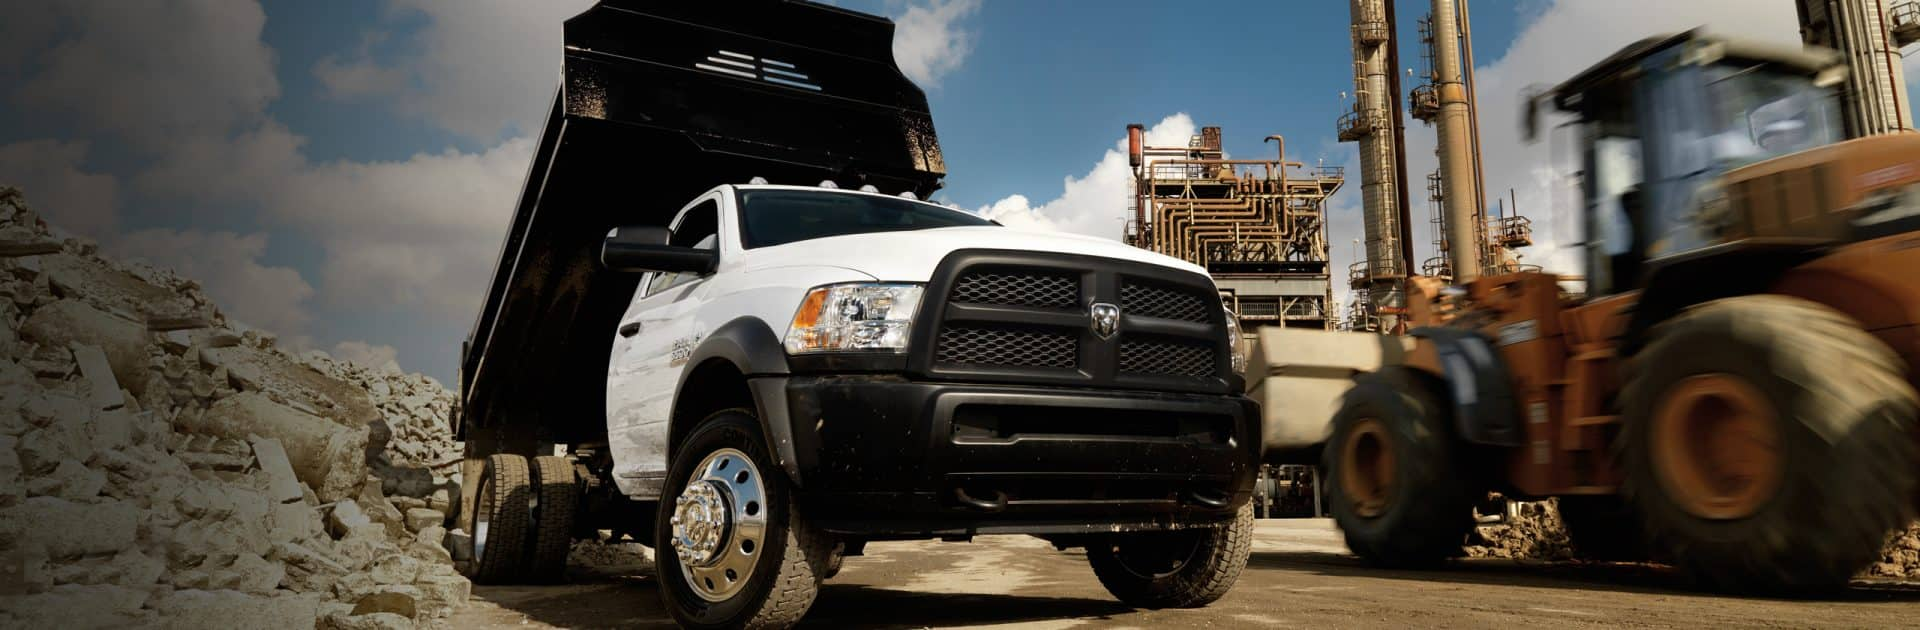 2018 Ram Trucks Chassis Cab Capability